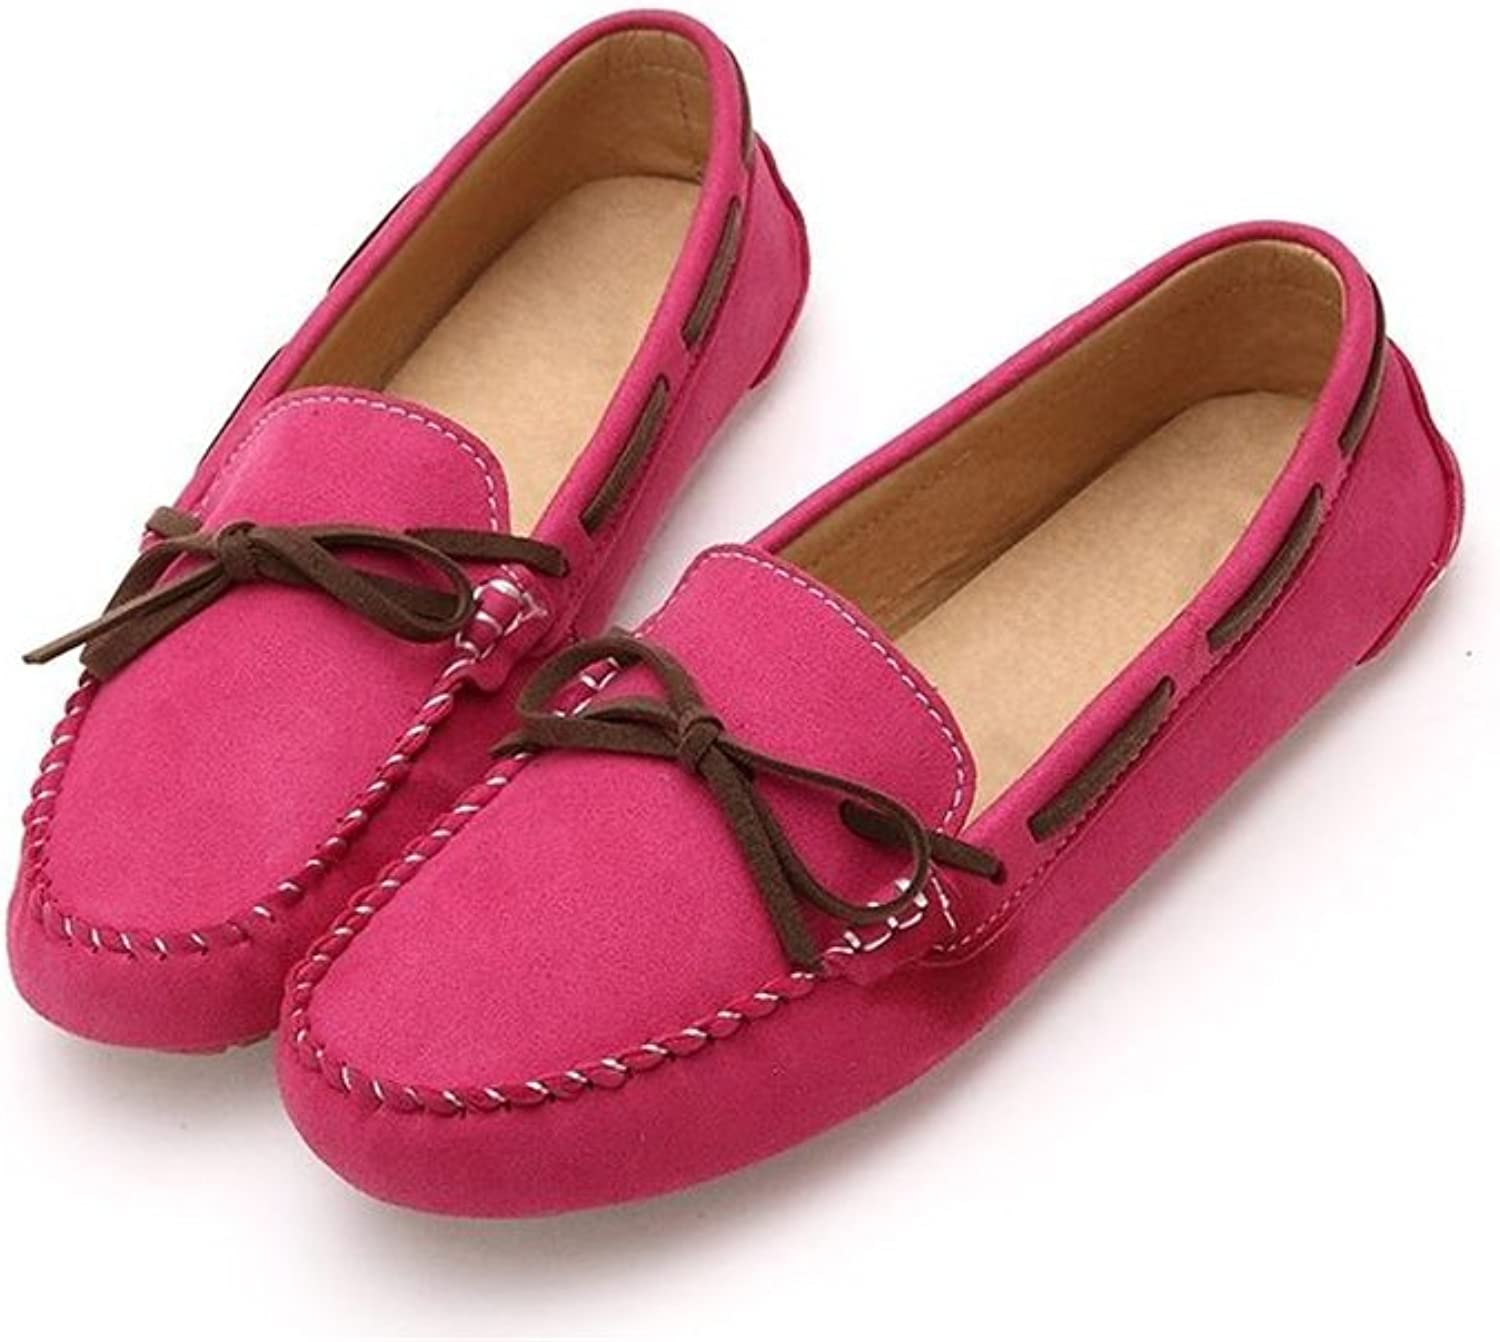 Excellent.c Women's Non-Slip Loafers Comfortable Flat shoes Round Toe Casual shoes